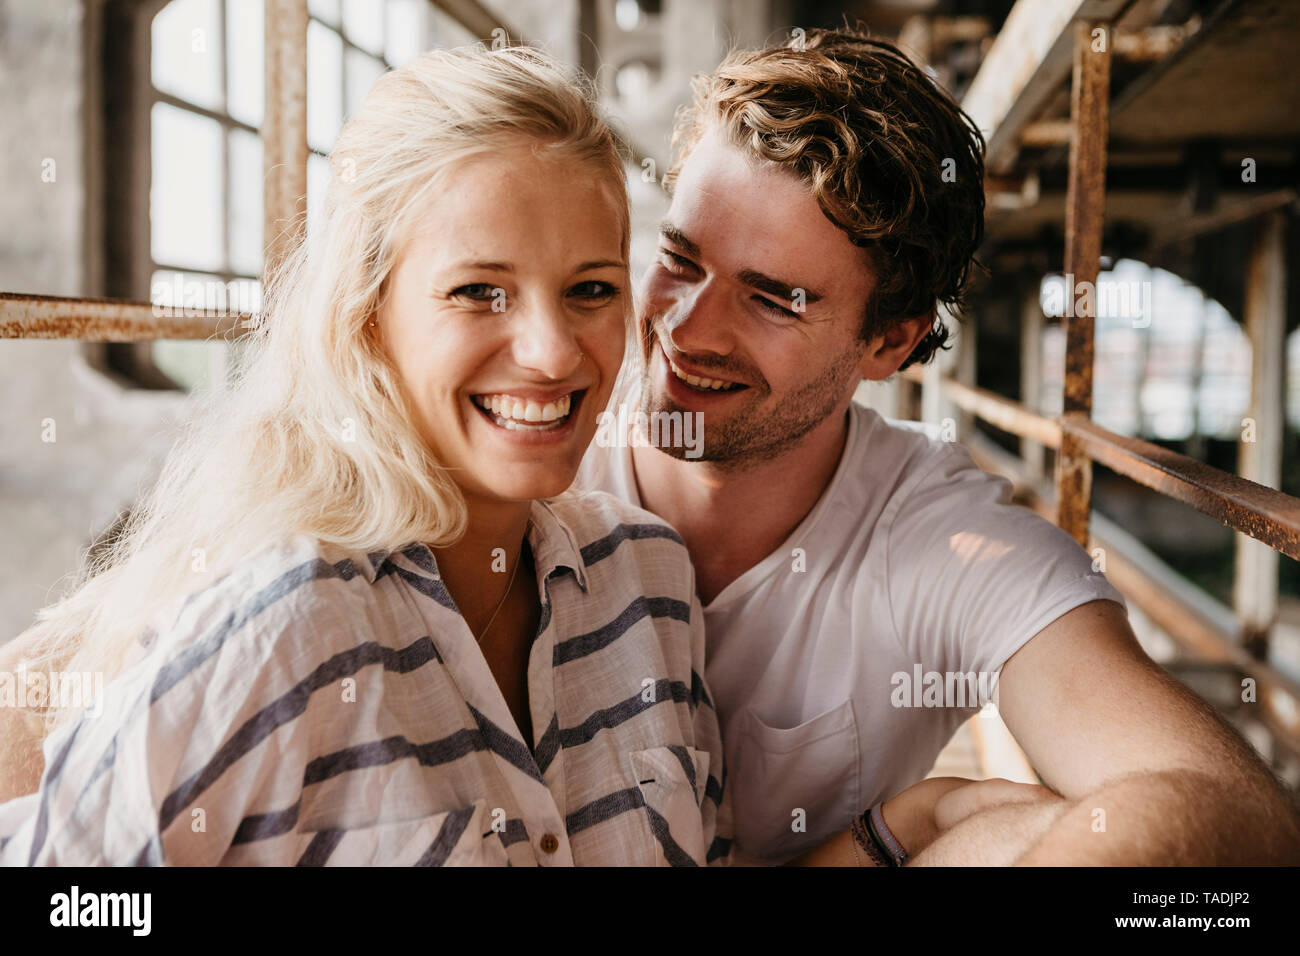 Portrait of happy young couple in an old building - Stock Image